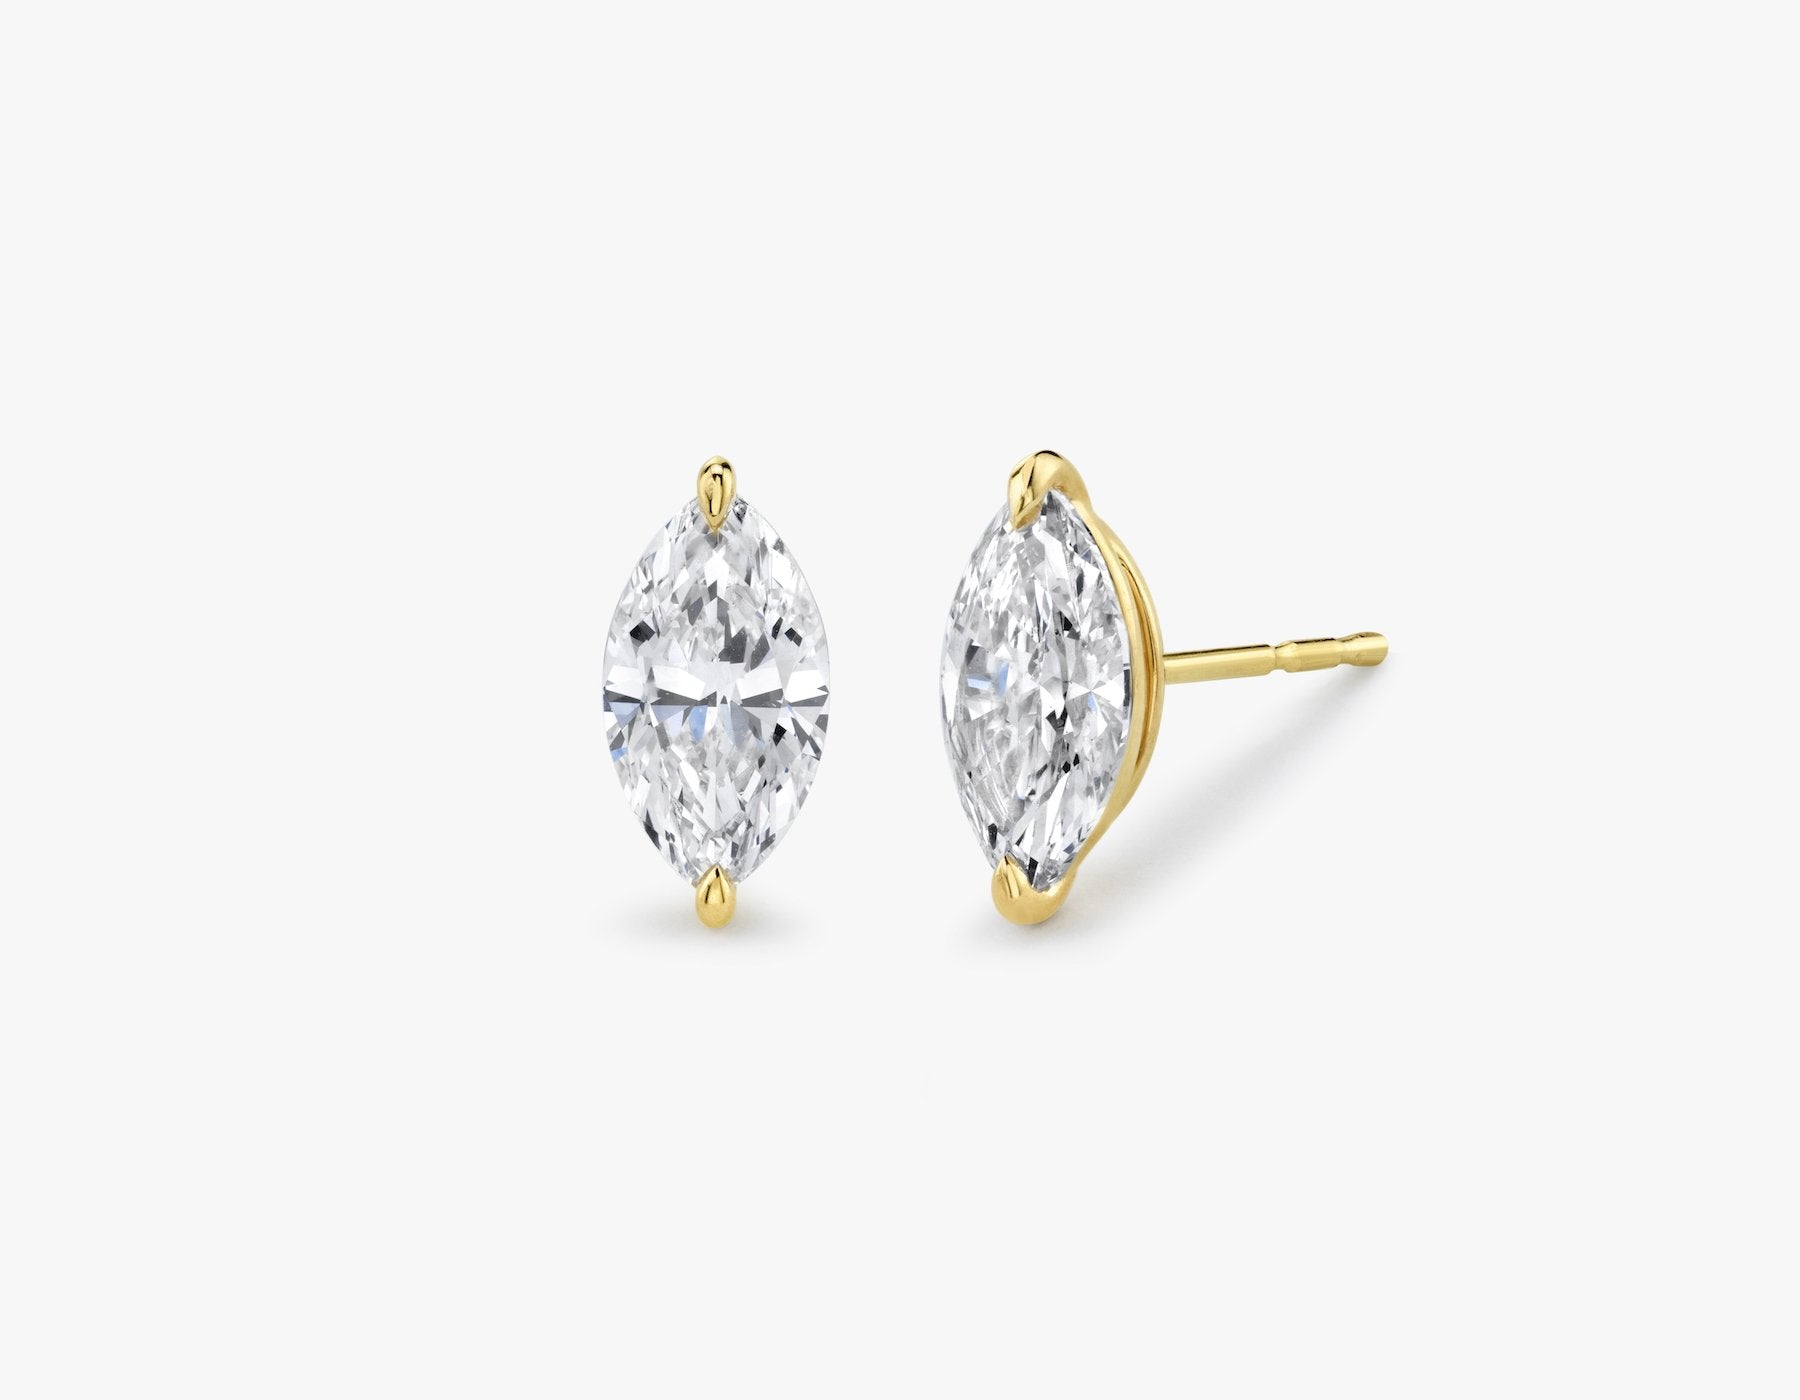 Vrai 14K solid gold solitaire marquise diamond studs earrings 1ct minimalist delicate, 14K Yellow Gold